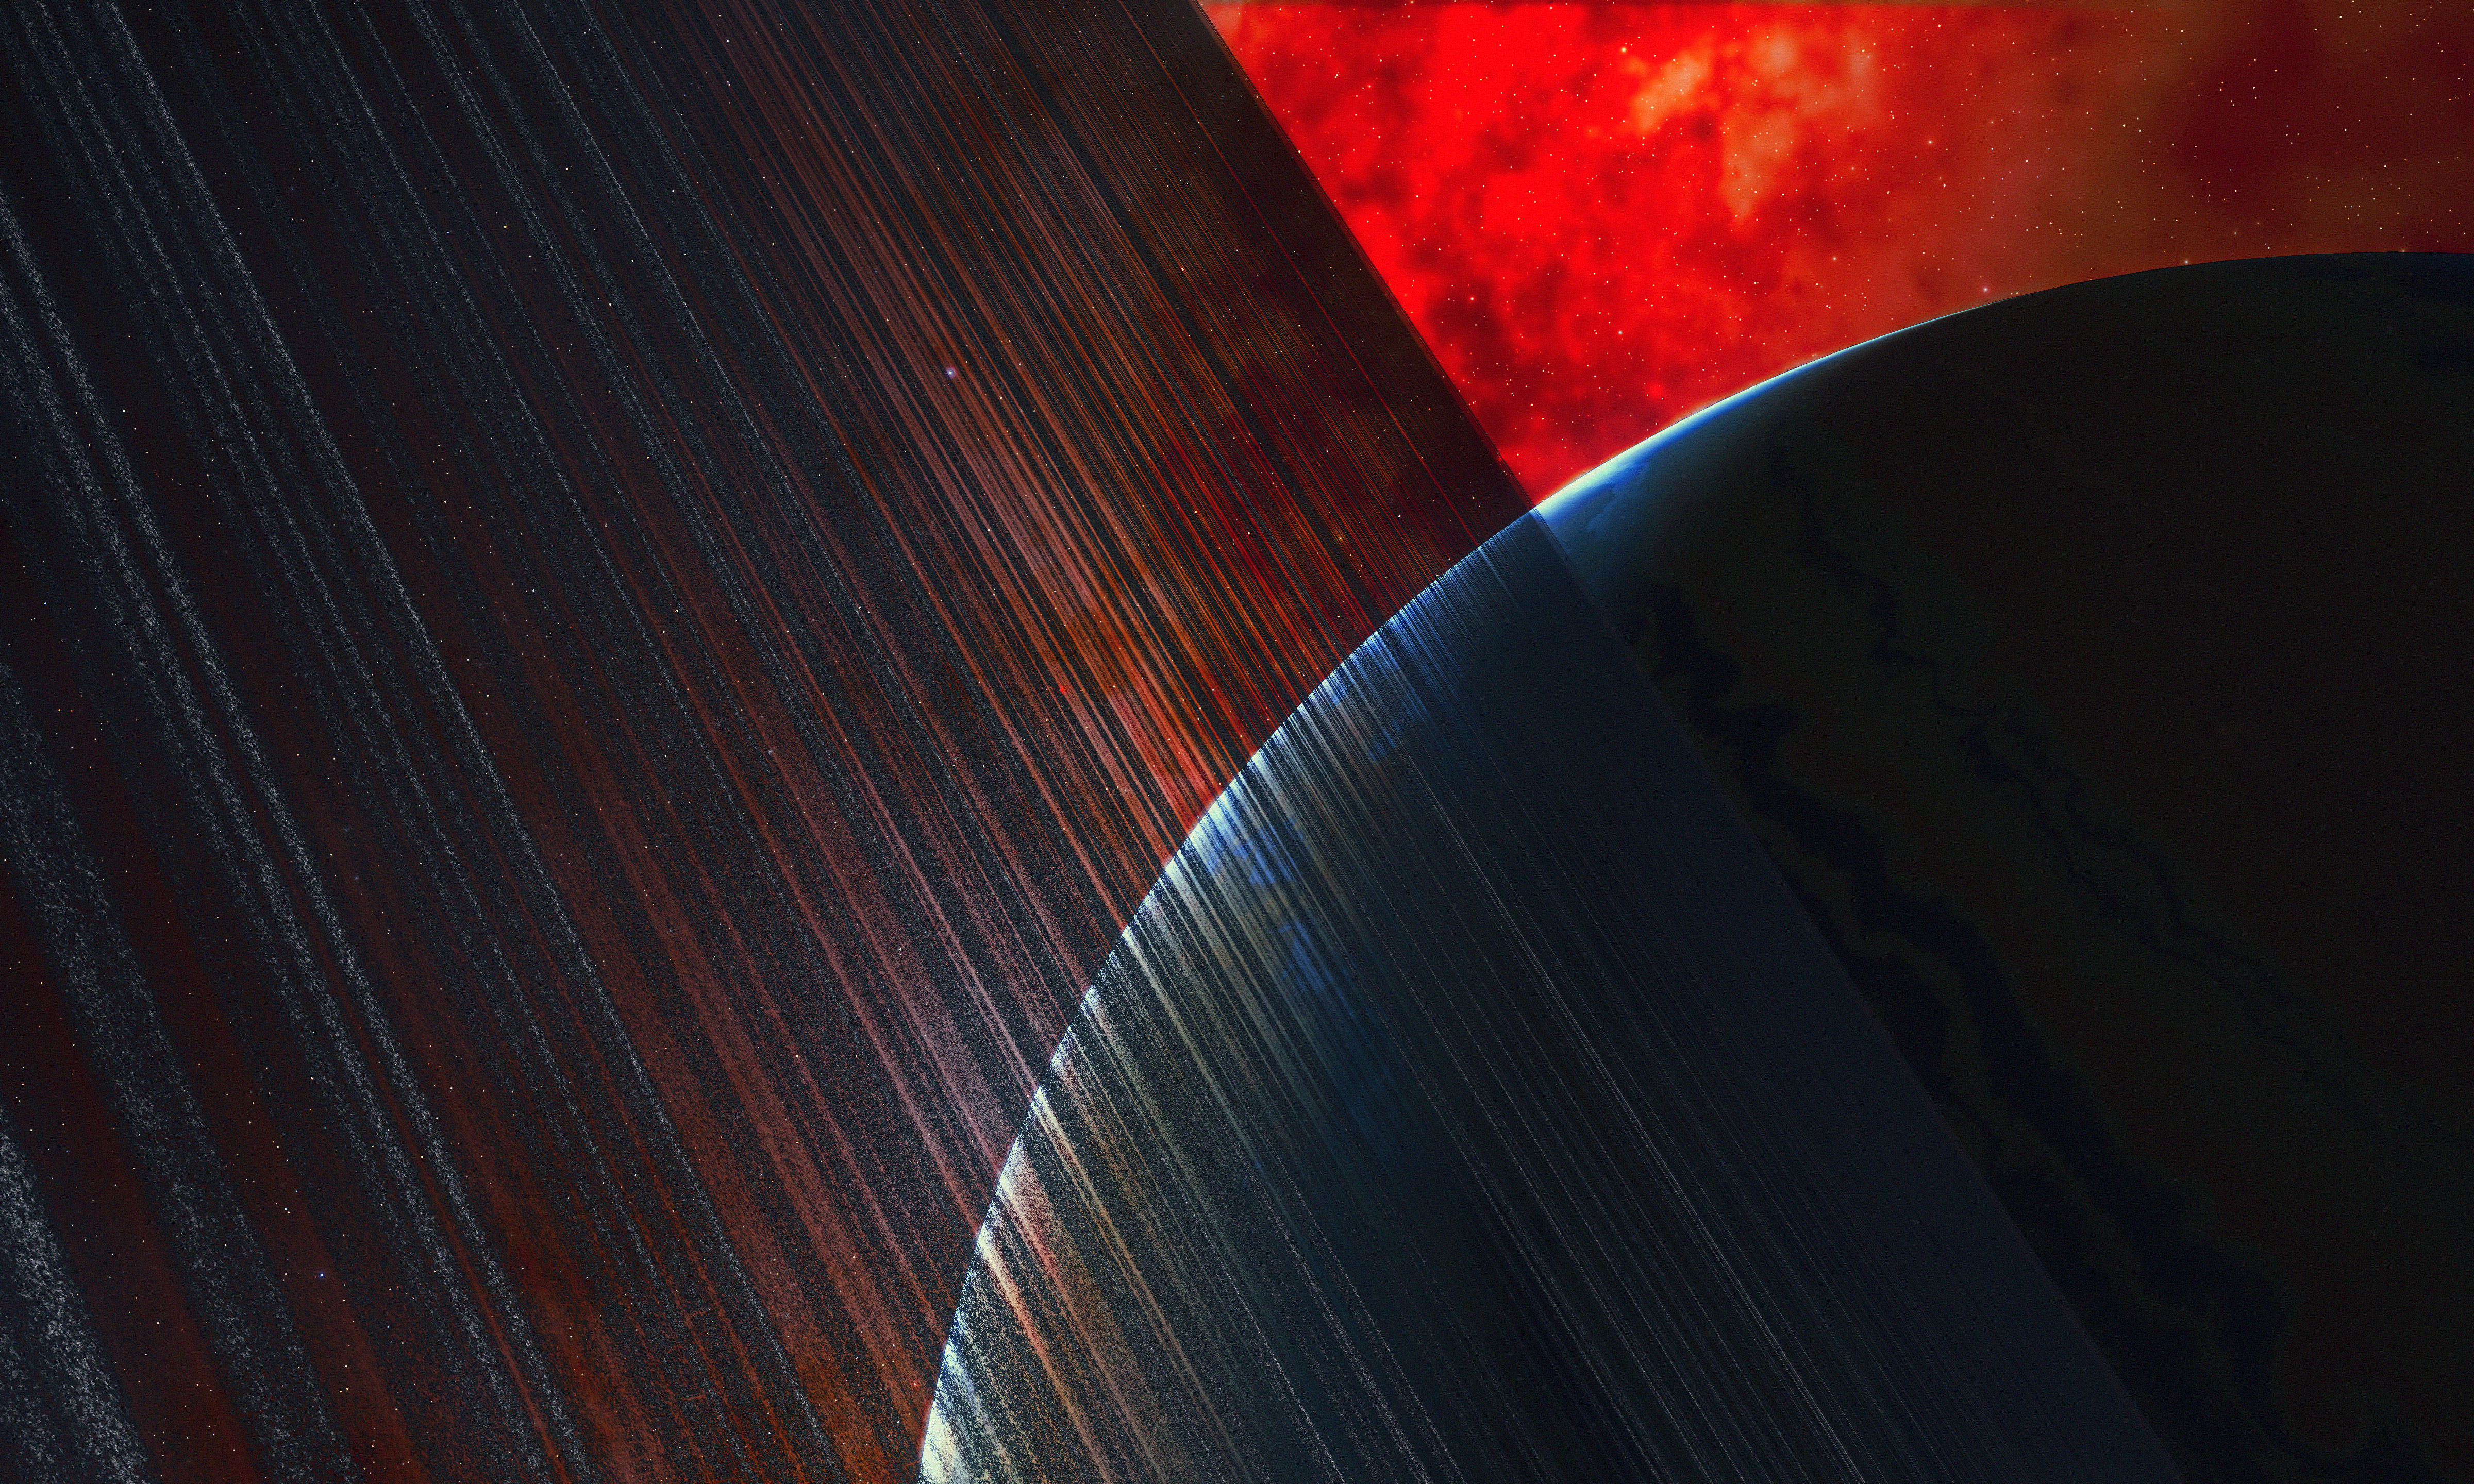 1920x1080 Space Engine Abstract 5k Laptop Full HD 1080P HD 4k Wallpapers, Images, Backgrounds ...